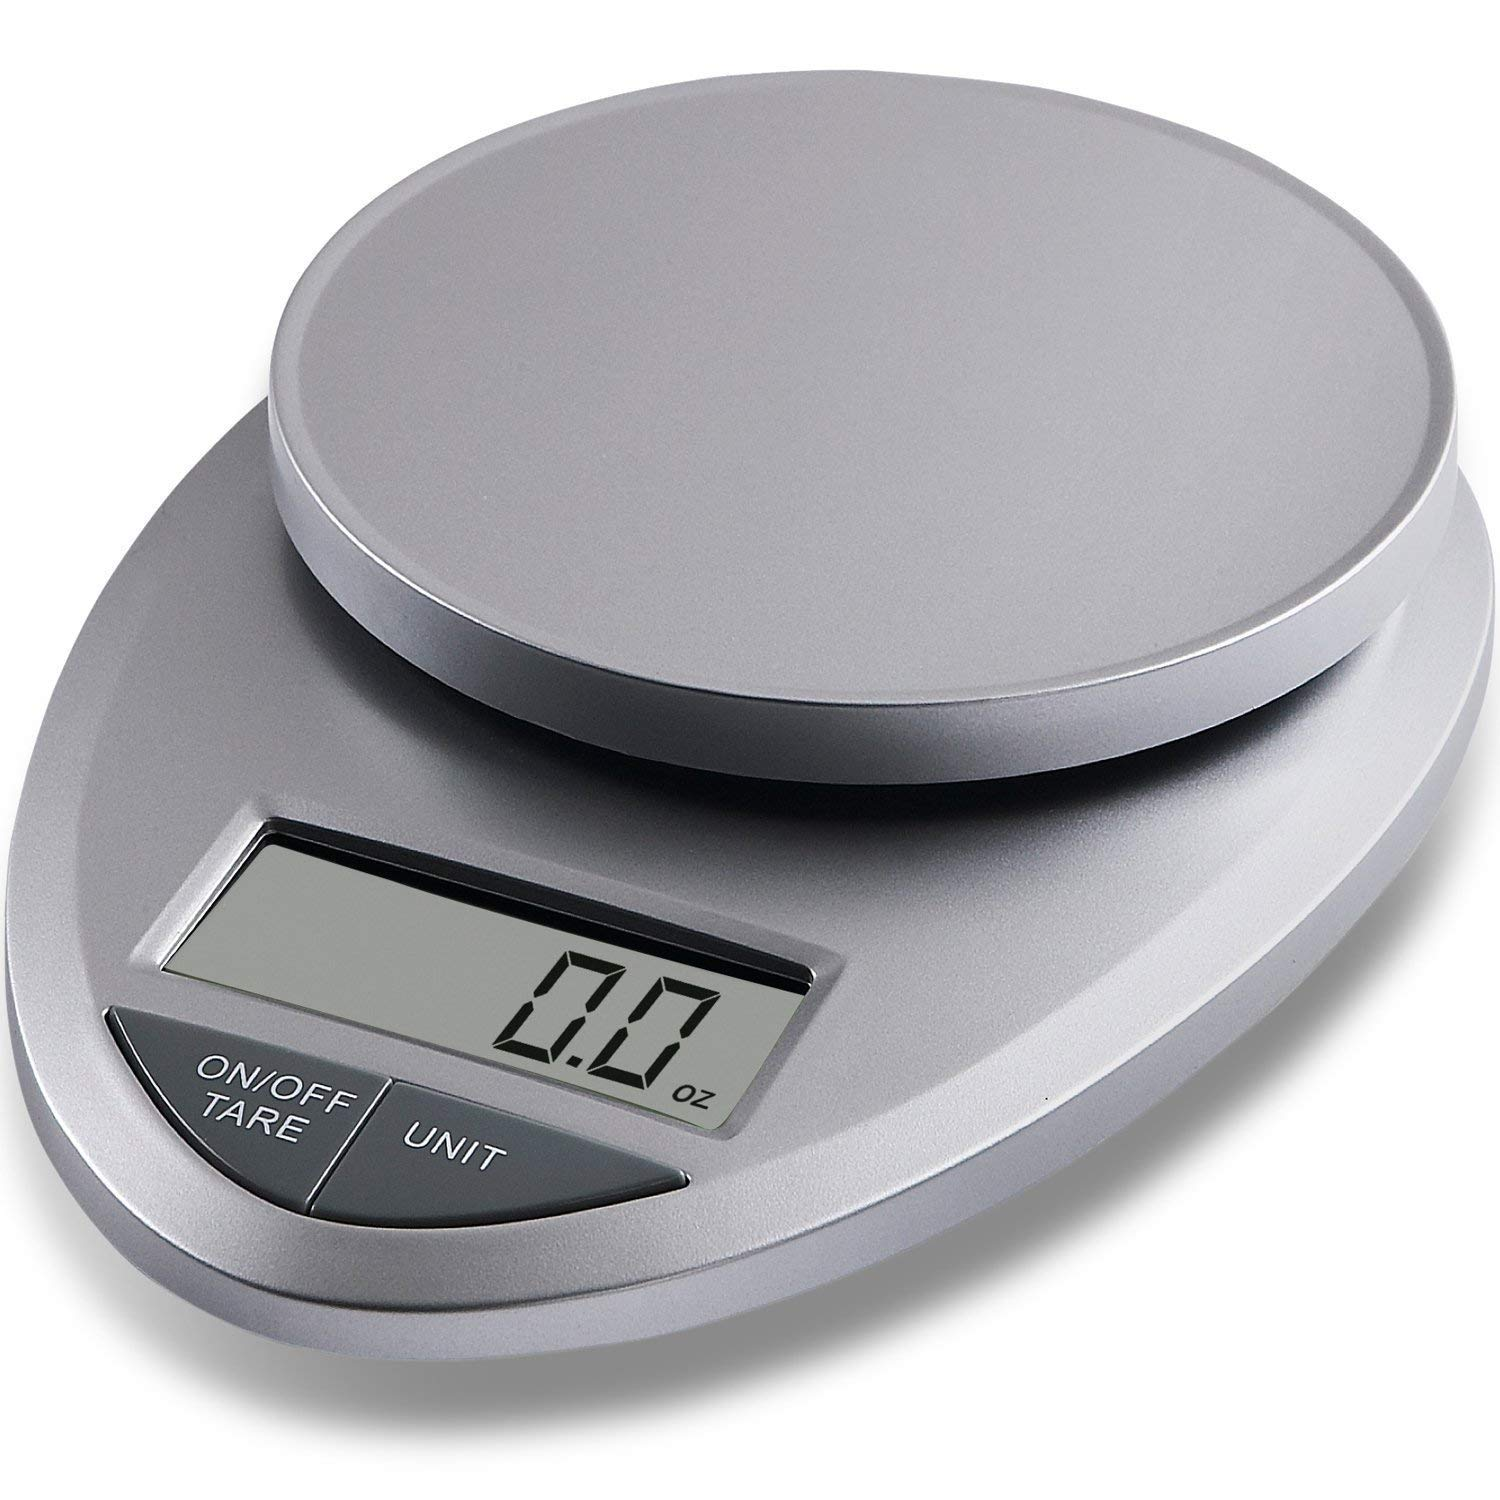 EatSmart ESKS-01Precision Pro Digital Kitchen Scale, White